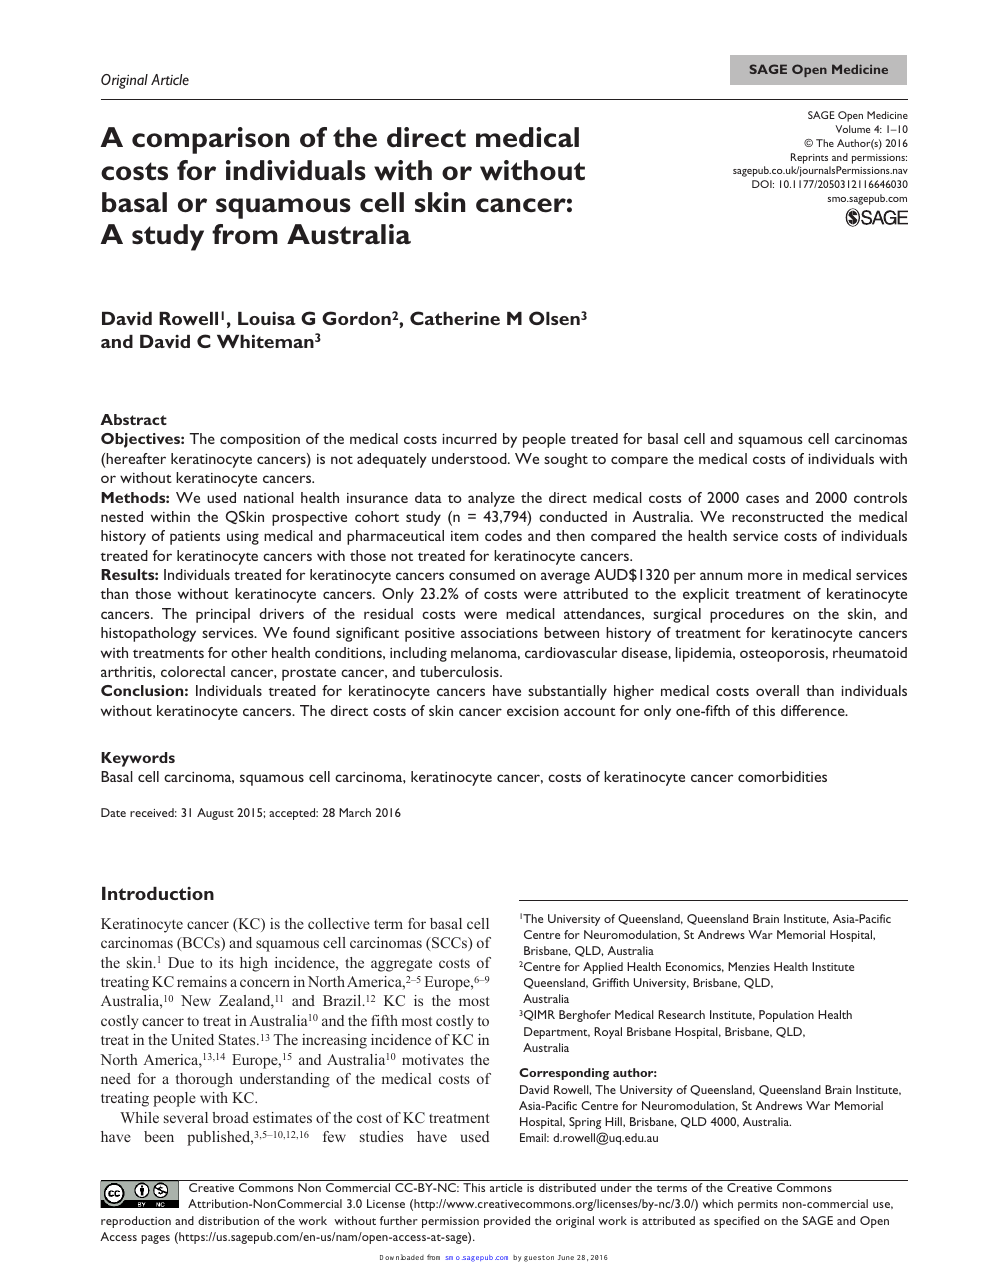 A Comparison Of The Direct Medical Costs For Individuals With Or Without Basal Or Squamous Cell Skin Cancer A Study From Australia Topic Of Research Paper In Clinical Medicine Download Scholarly